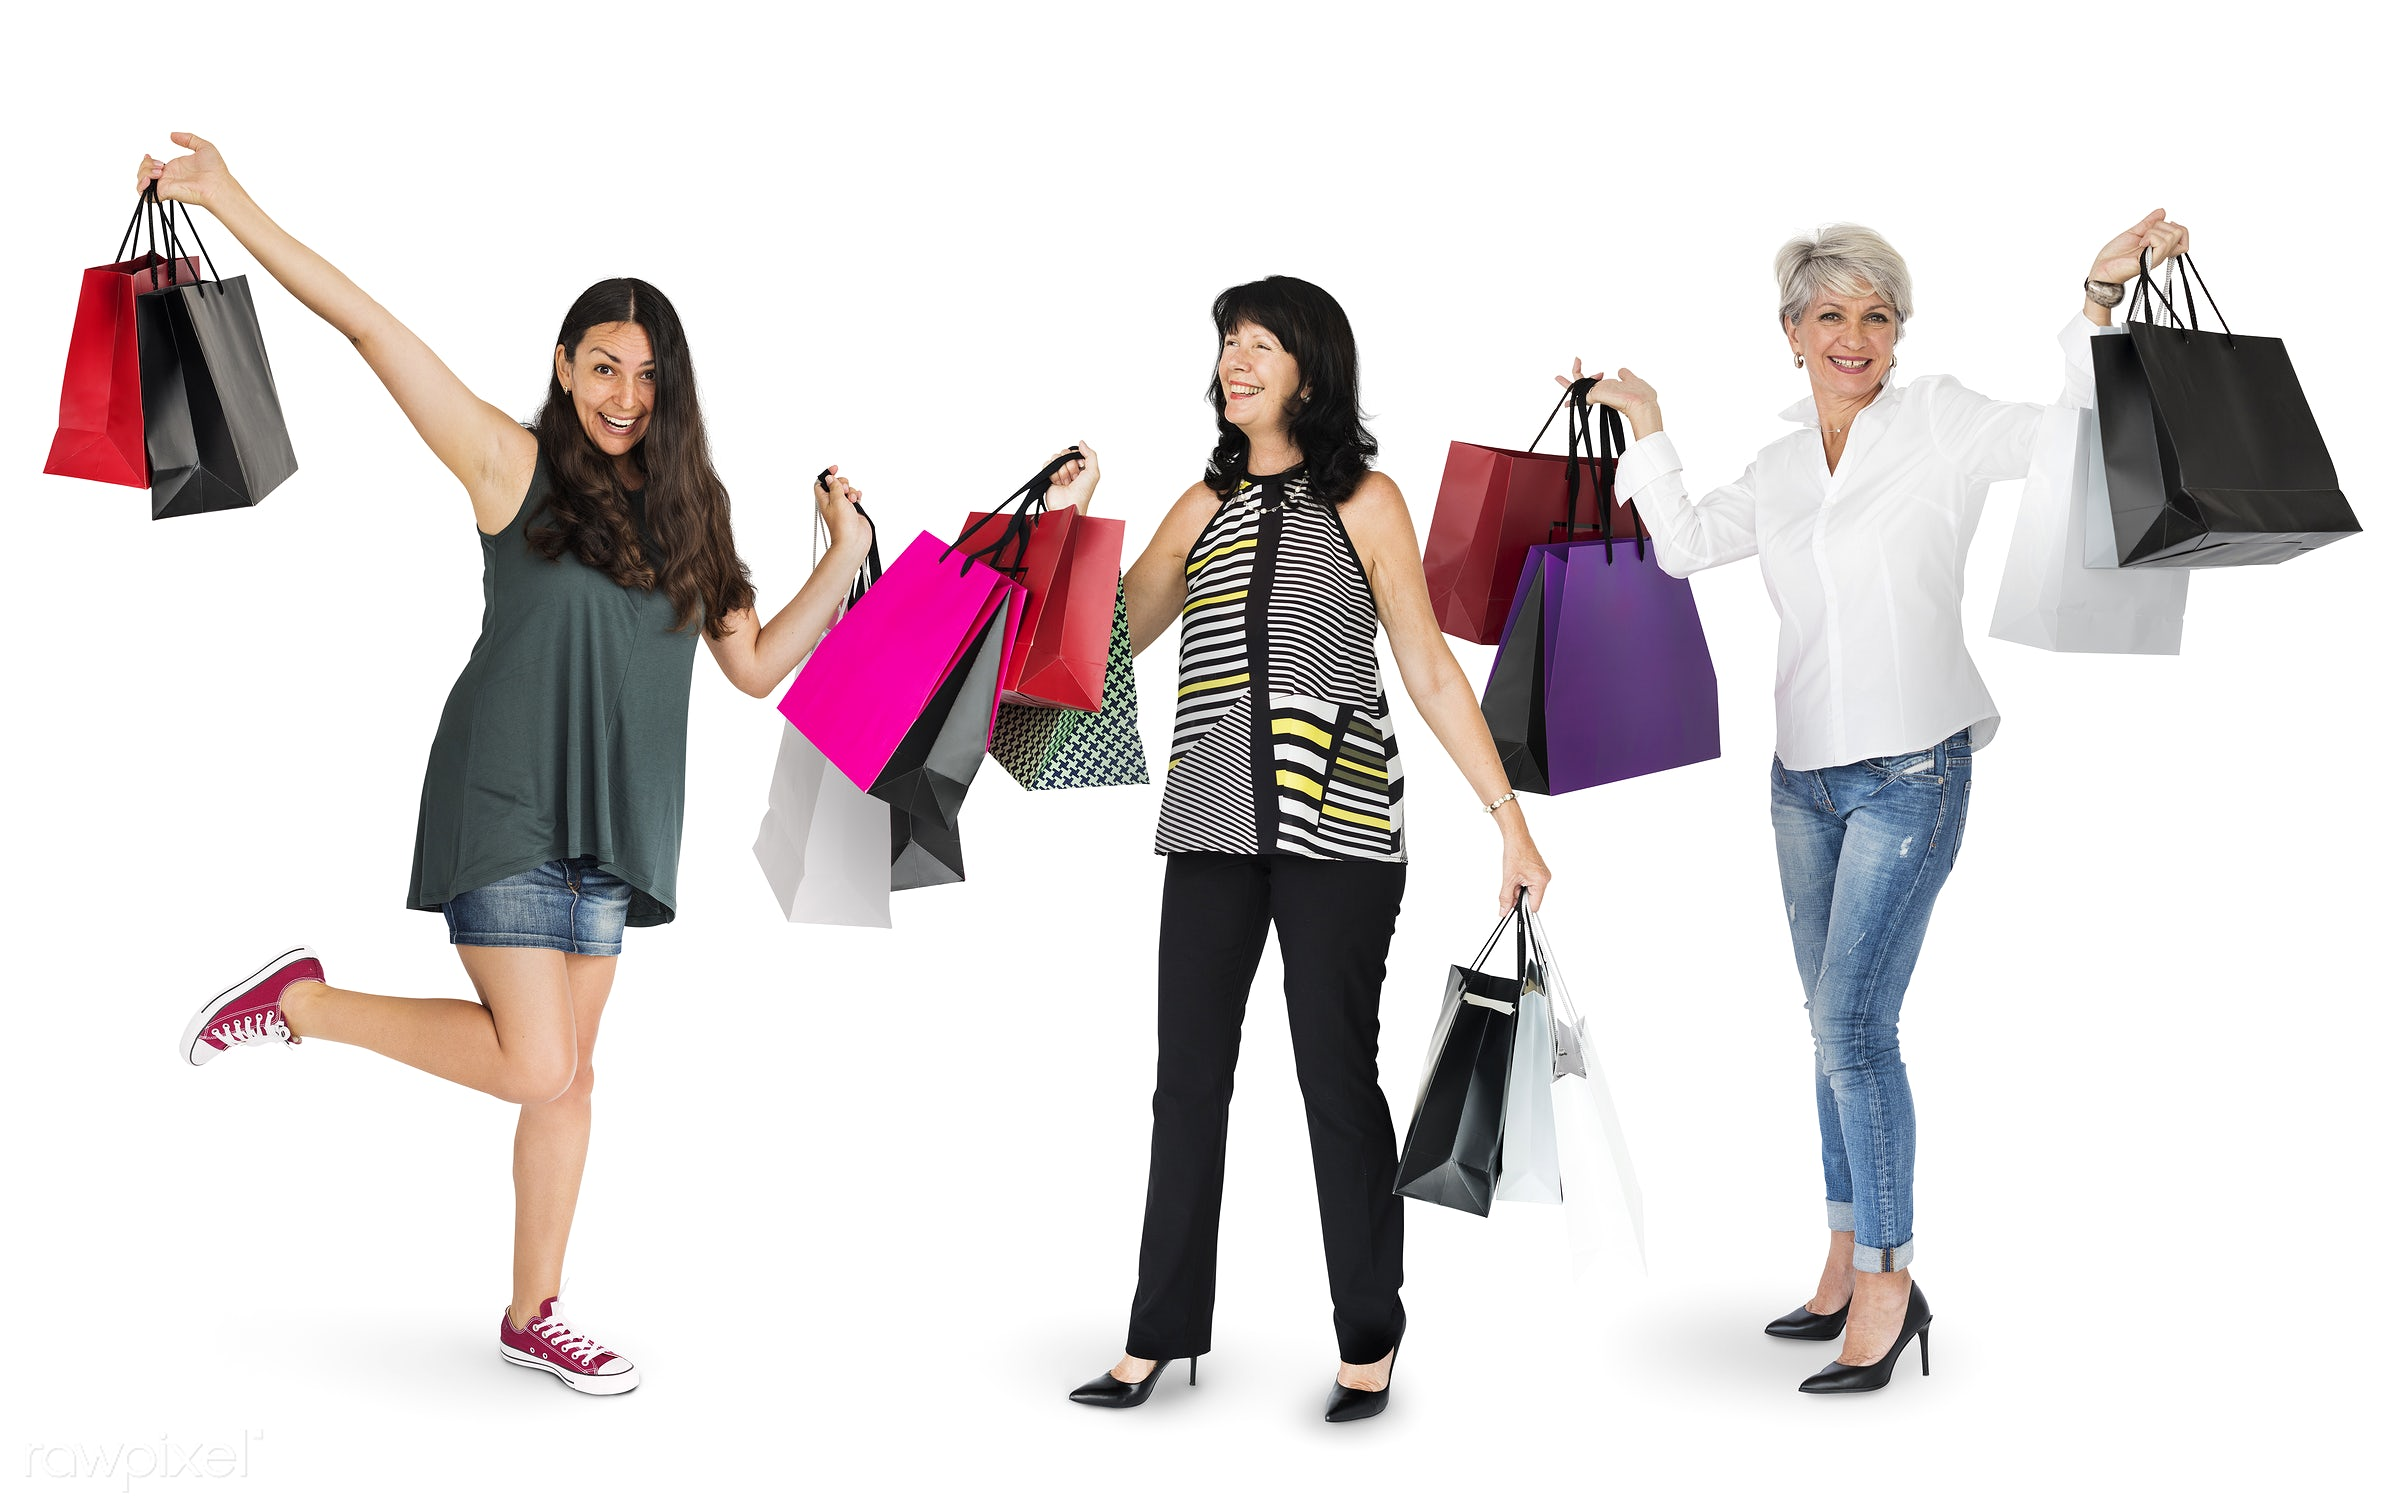 grocery, expression, studio, face, shop, person, buy, people, life, style, woman, lifestyle, mixed, middle age, studio...